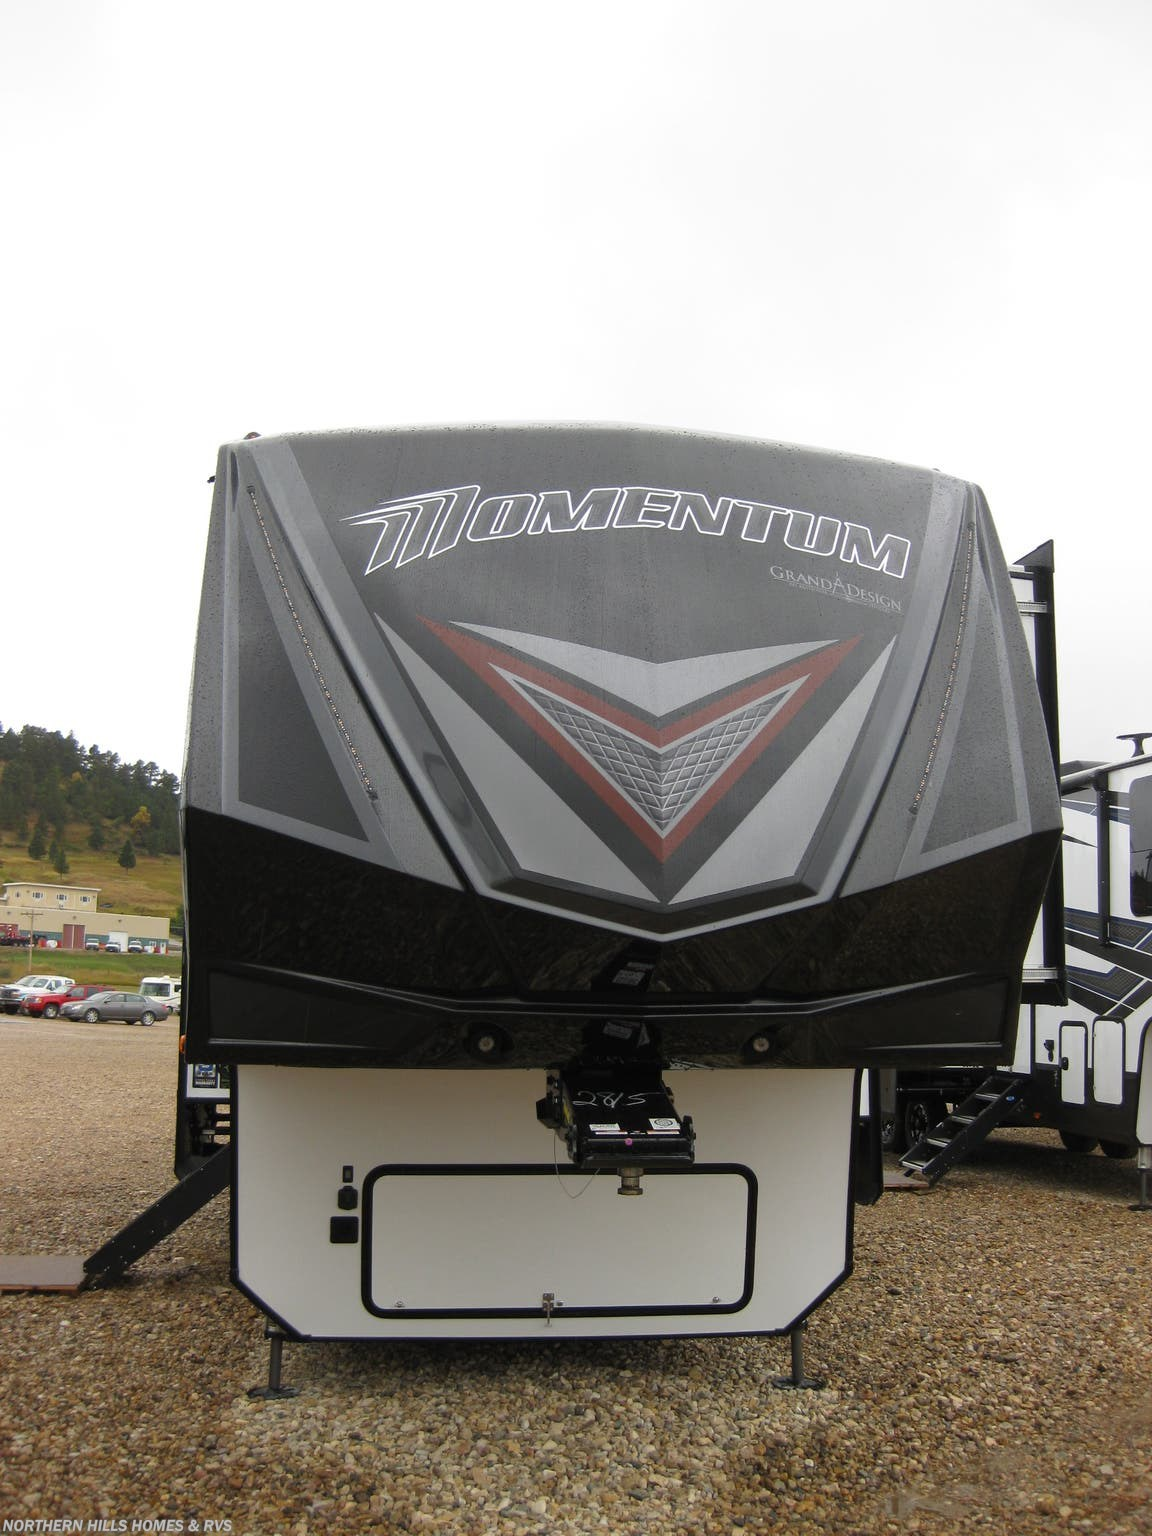 New Toy Hauler - 2019 Grand Design Momentum 399TH. Side Patio Deck  sc 1 st  Northern Hills Homes and RVs & GD21994 - 2019 Grand Design Momentum 399TH for sale in Whitewood SD